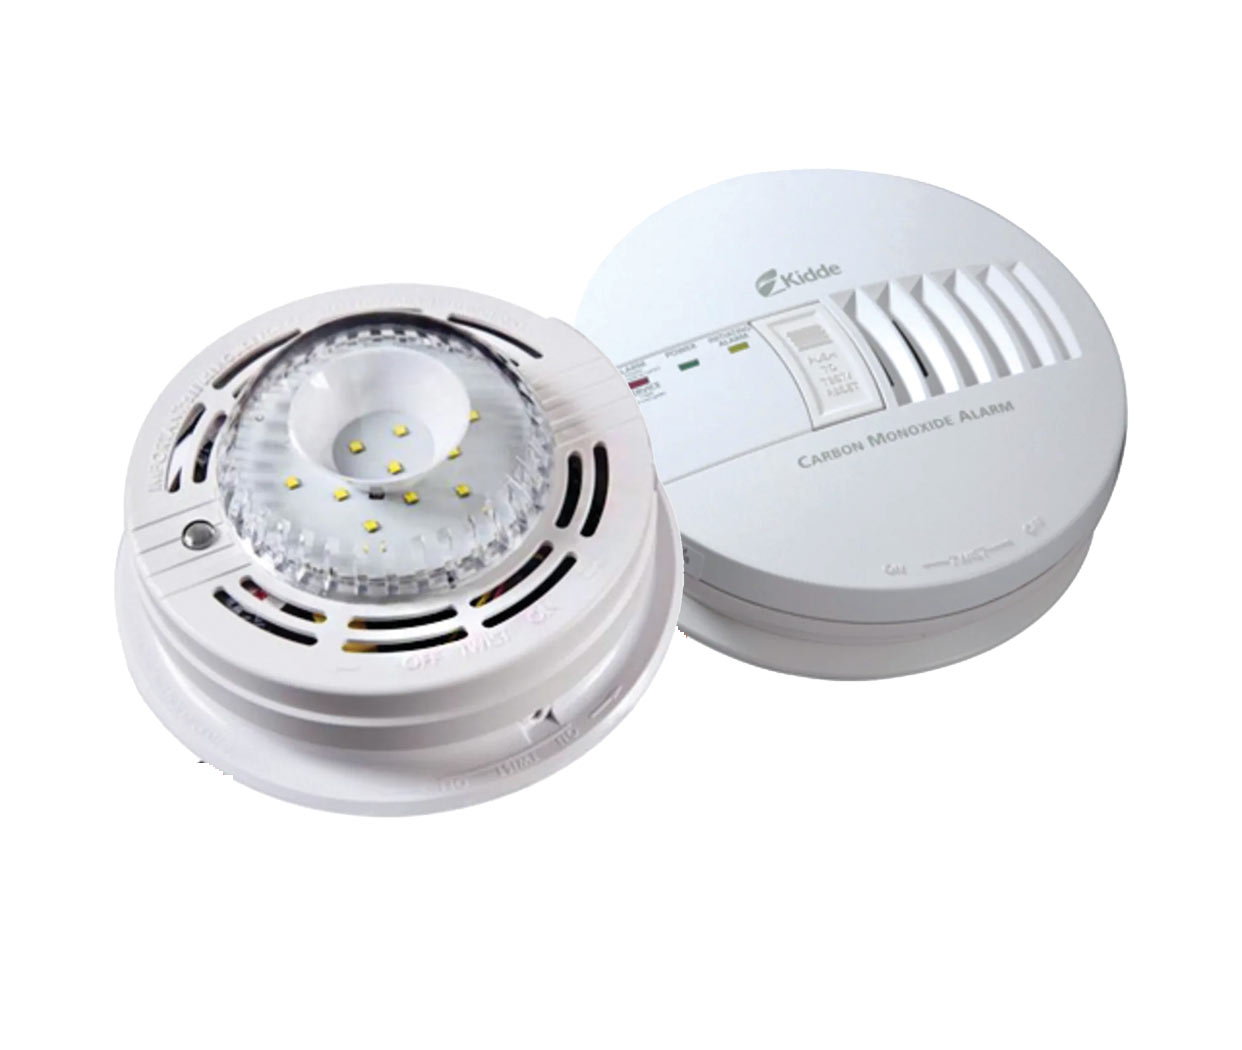 Kidde Carbon Monoxide Alarm with Strobe Light